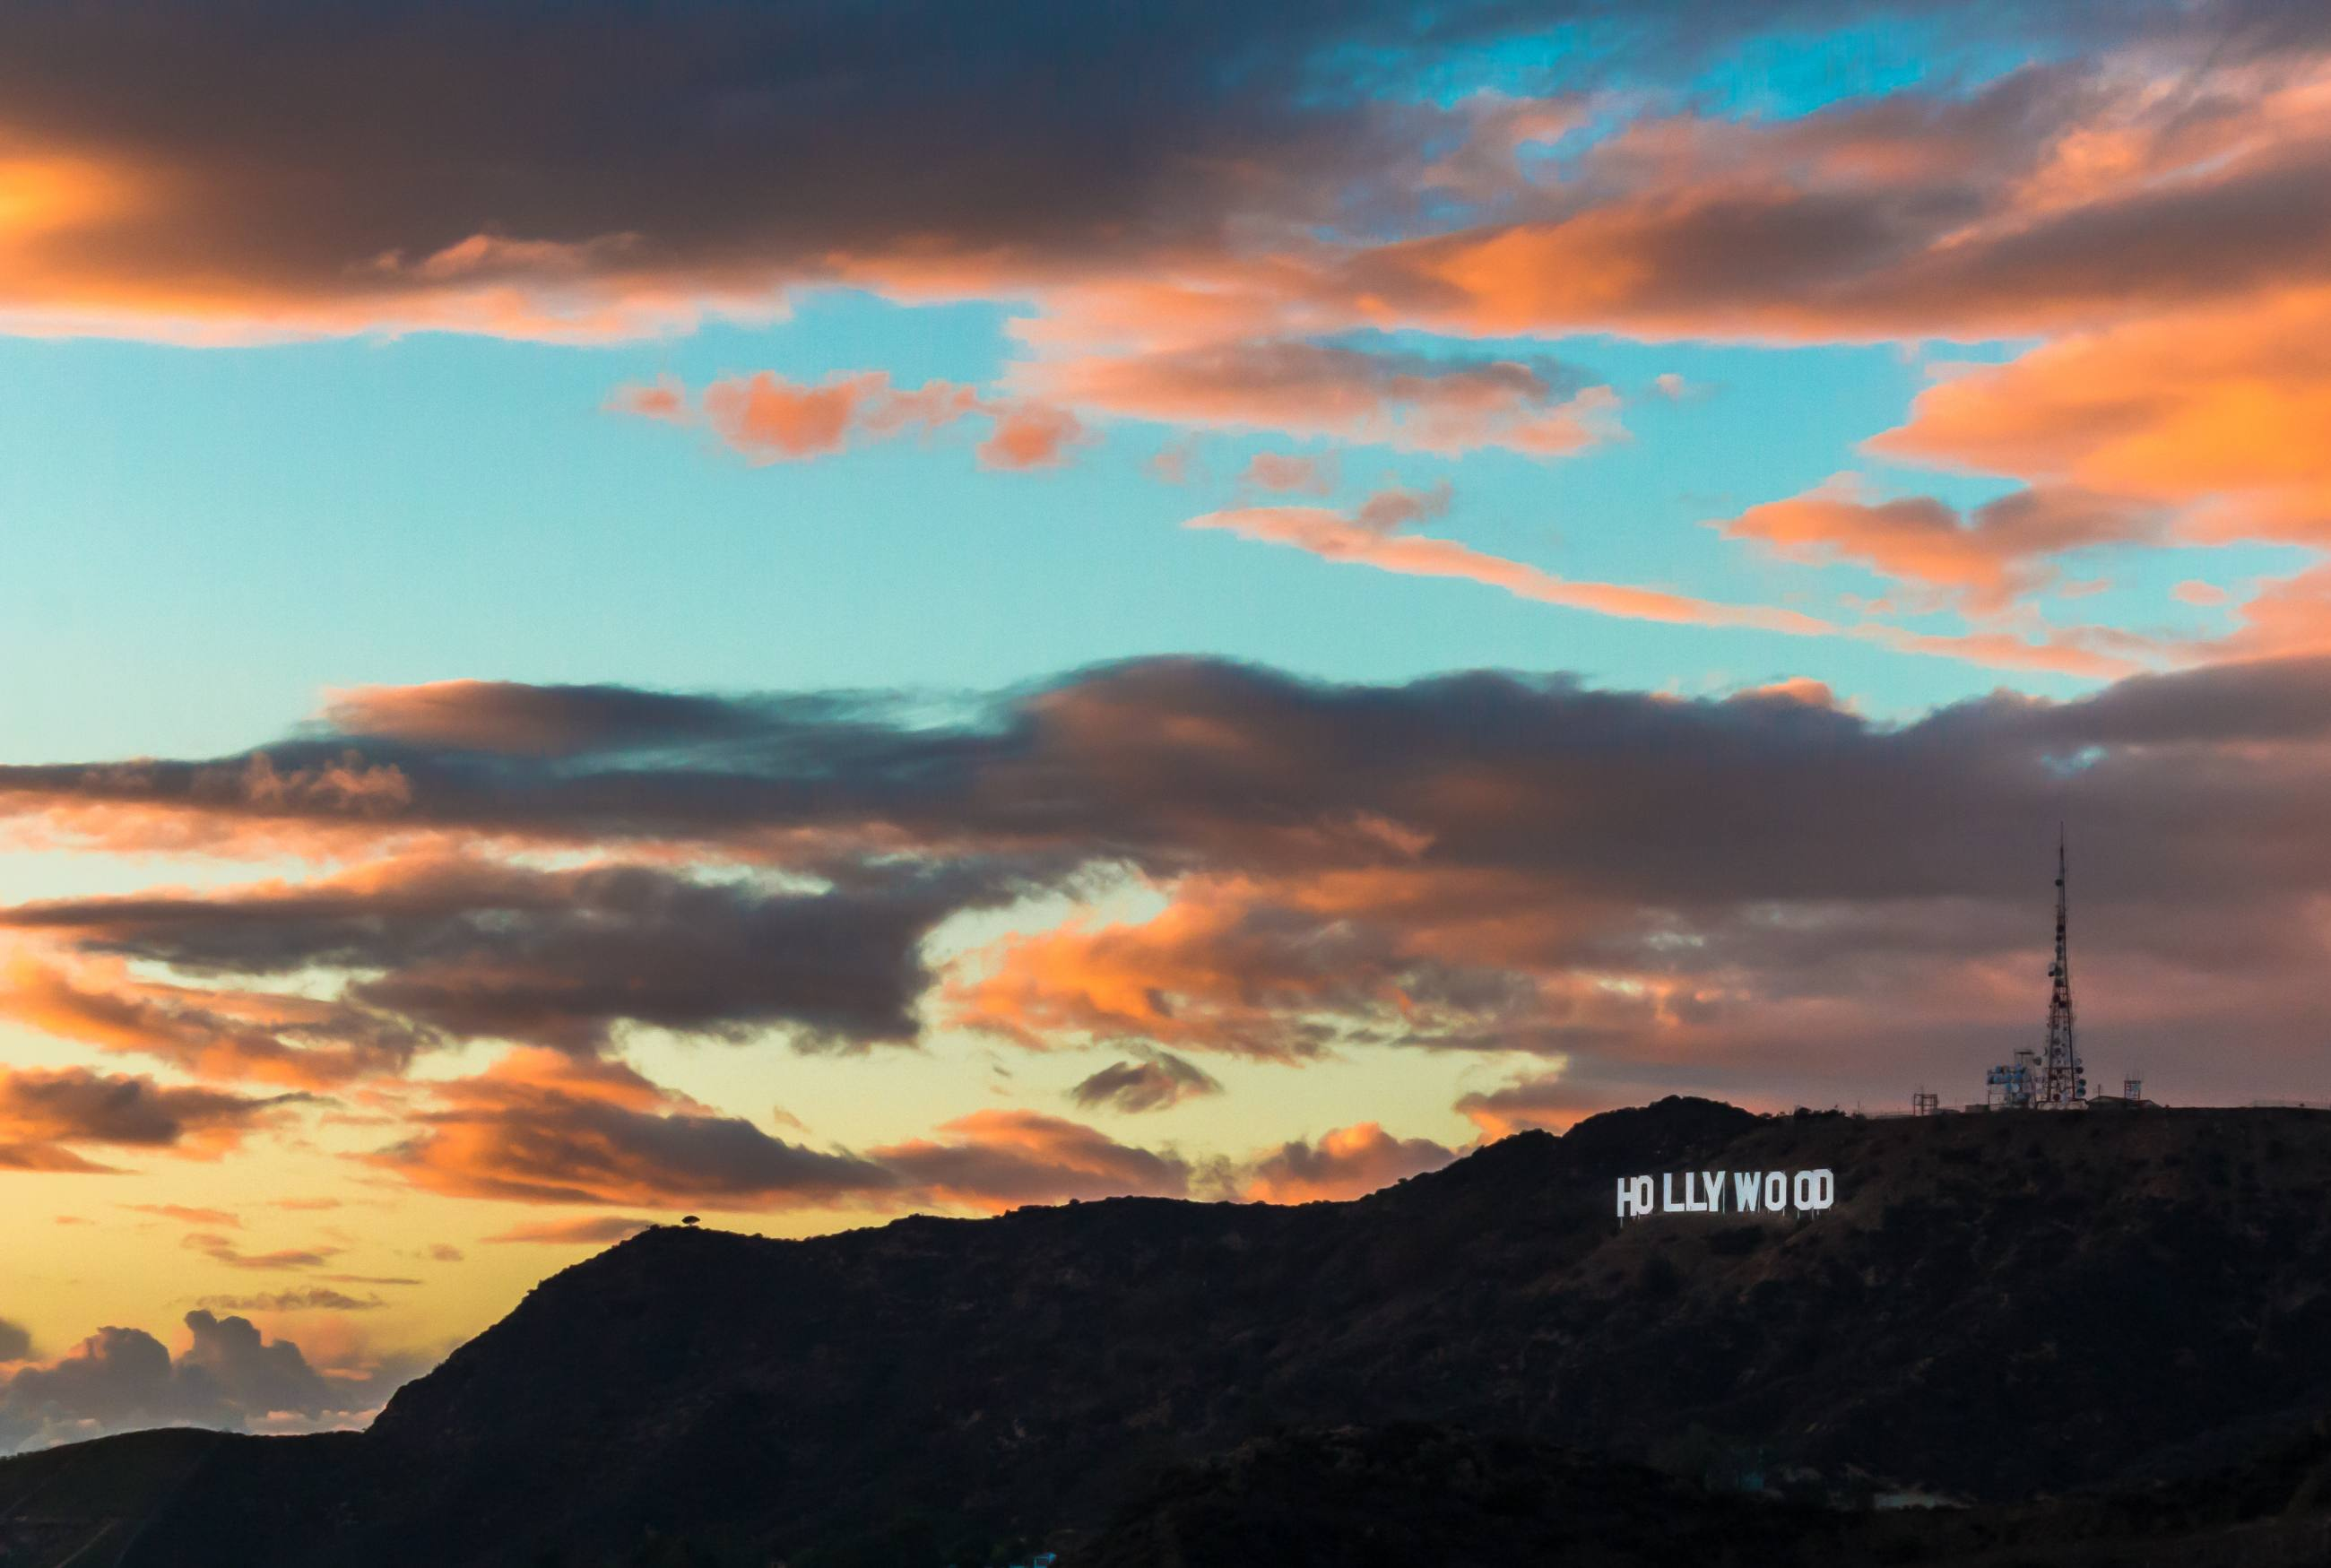 Hollywood Sign viewed from Griffith Observatory at sunset